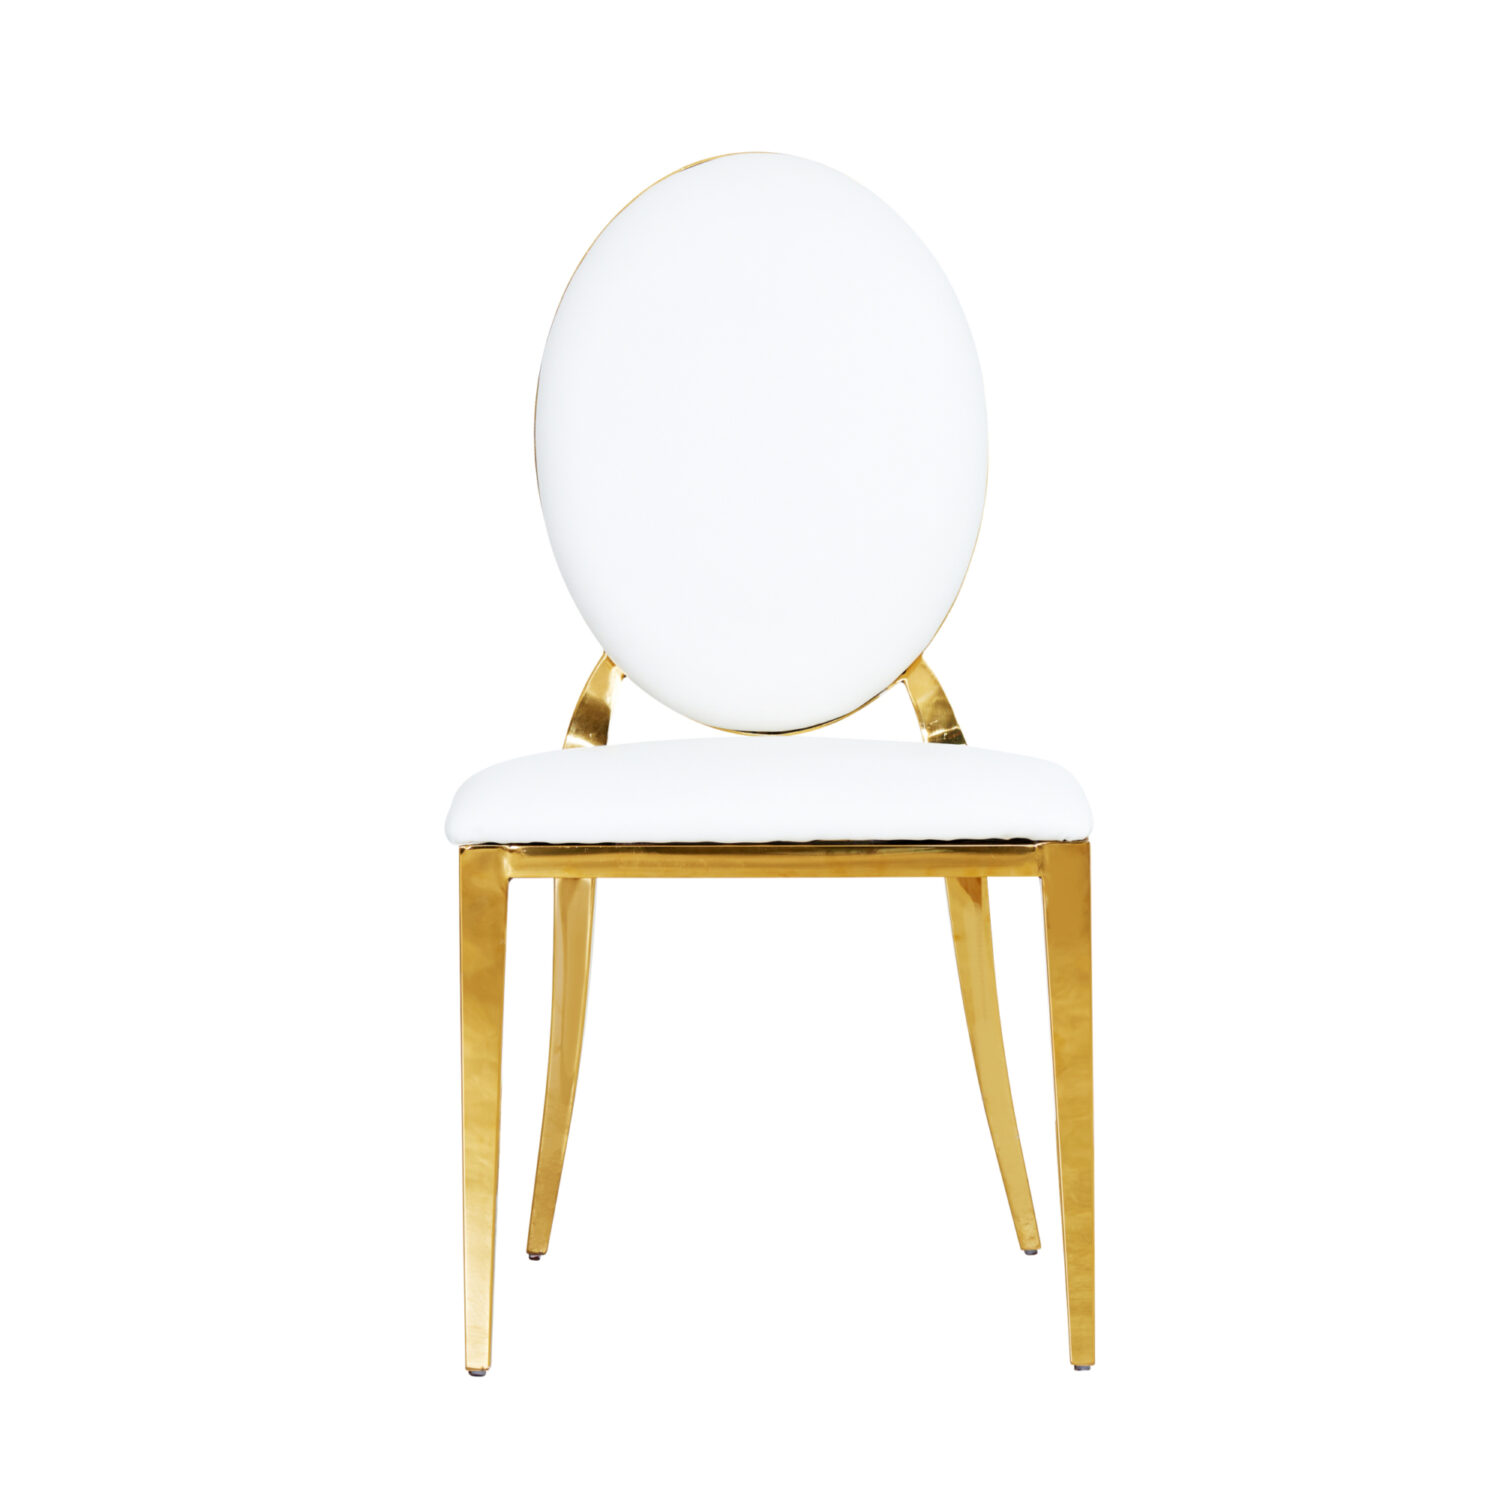 Harlow Dining Chair - White leather - Event Artillery